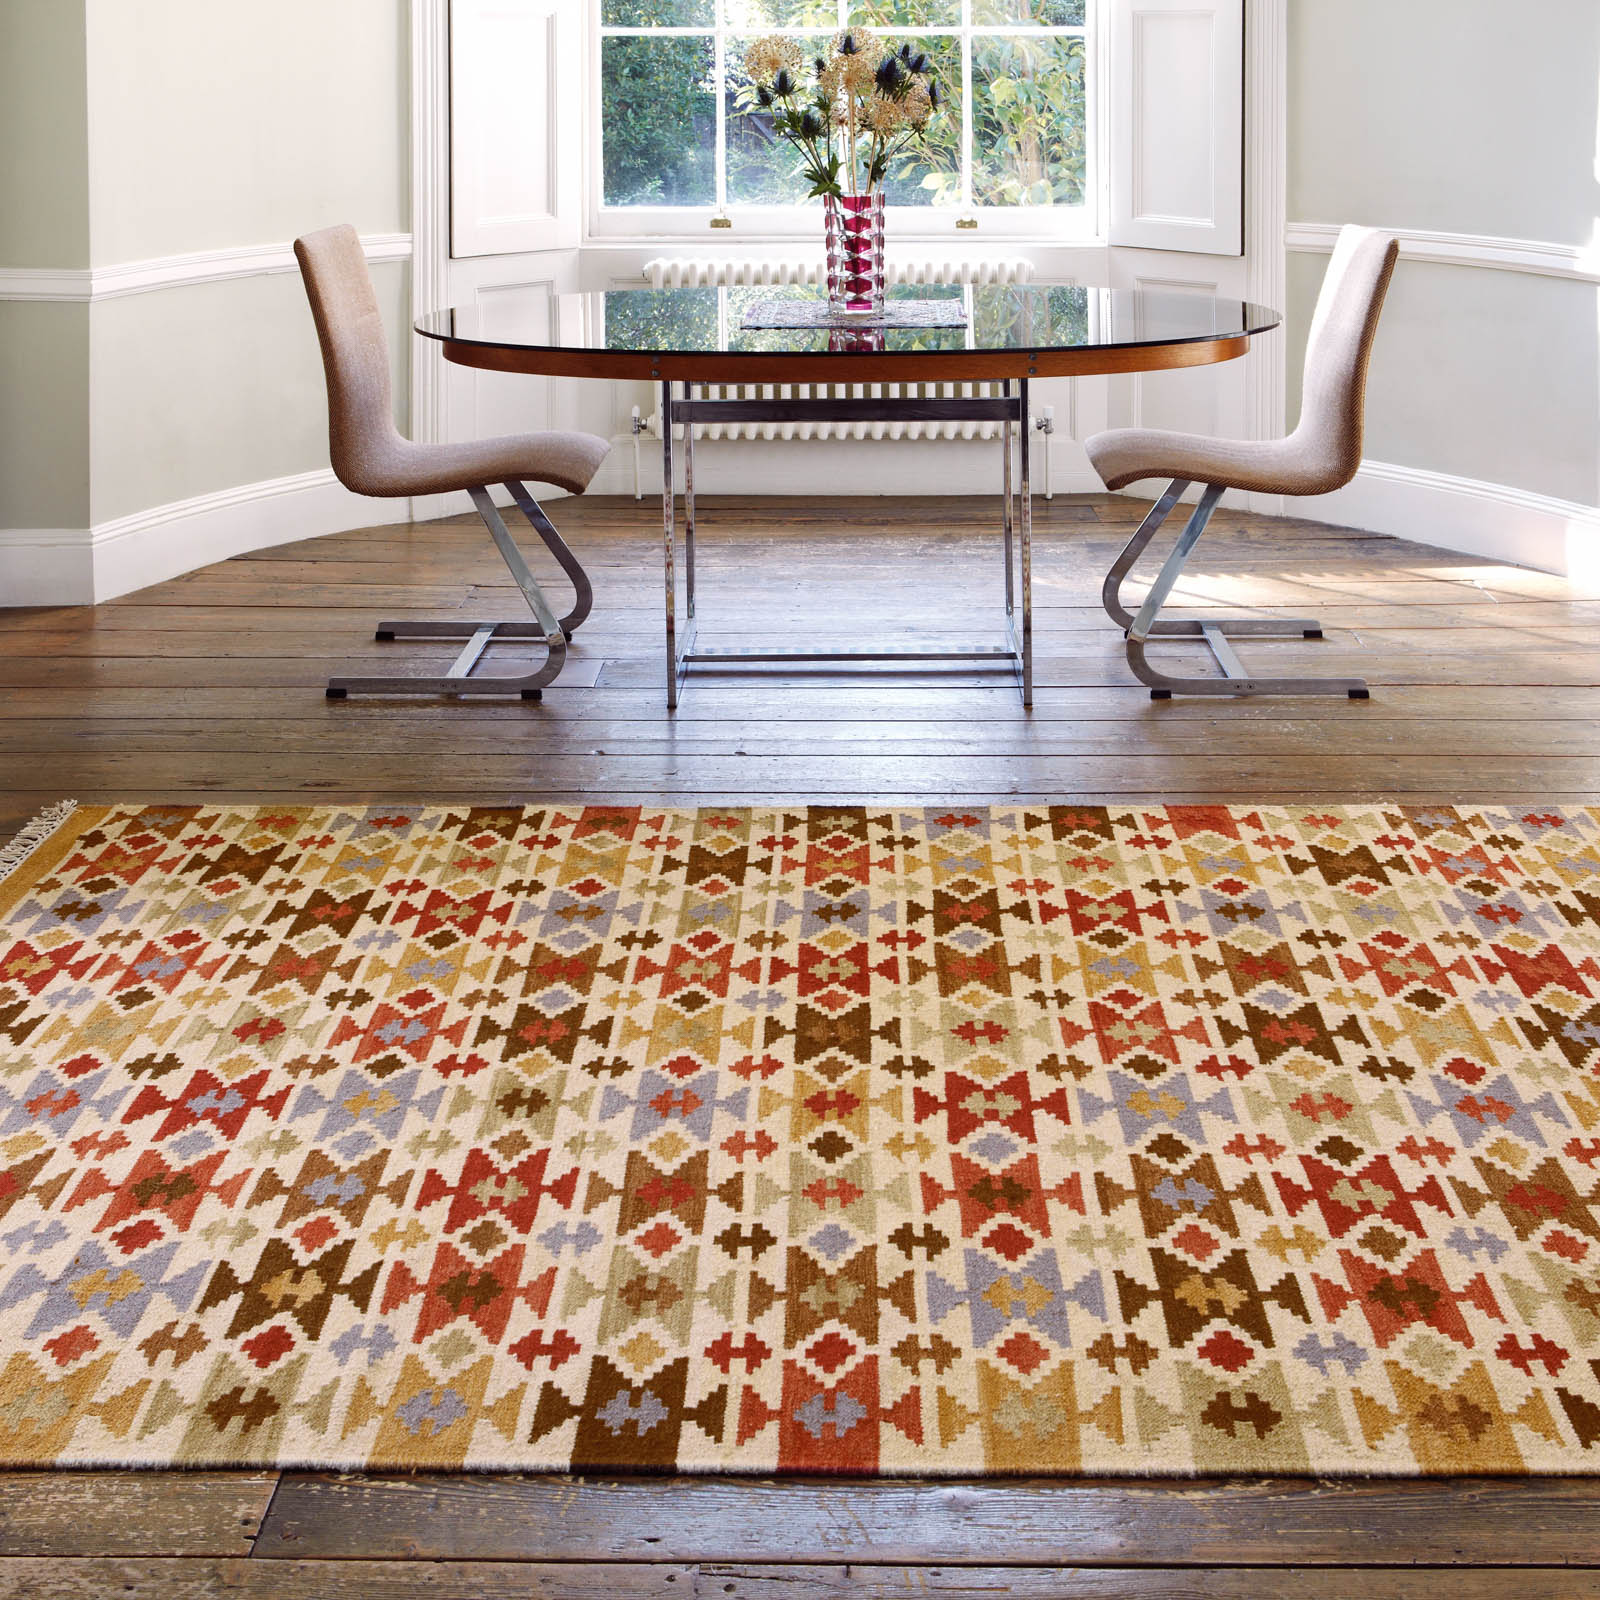 patterened kilim rug on wooden dining room floor next to glass plated table and chairs